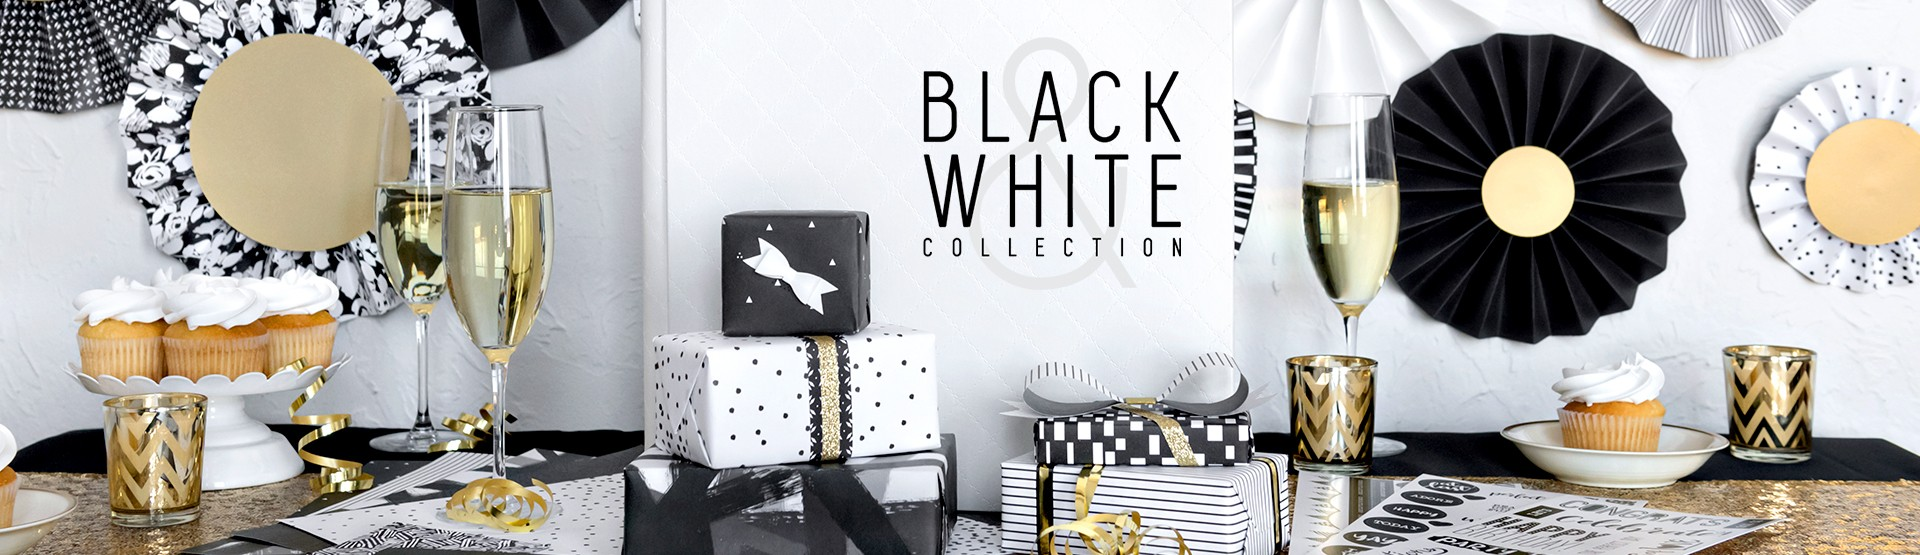 All Occasions: Black & White